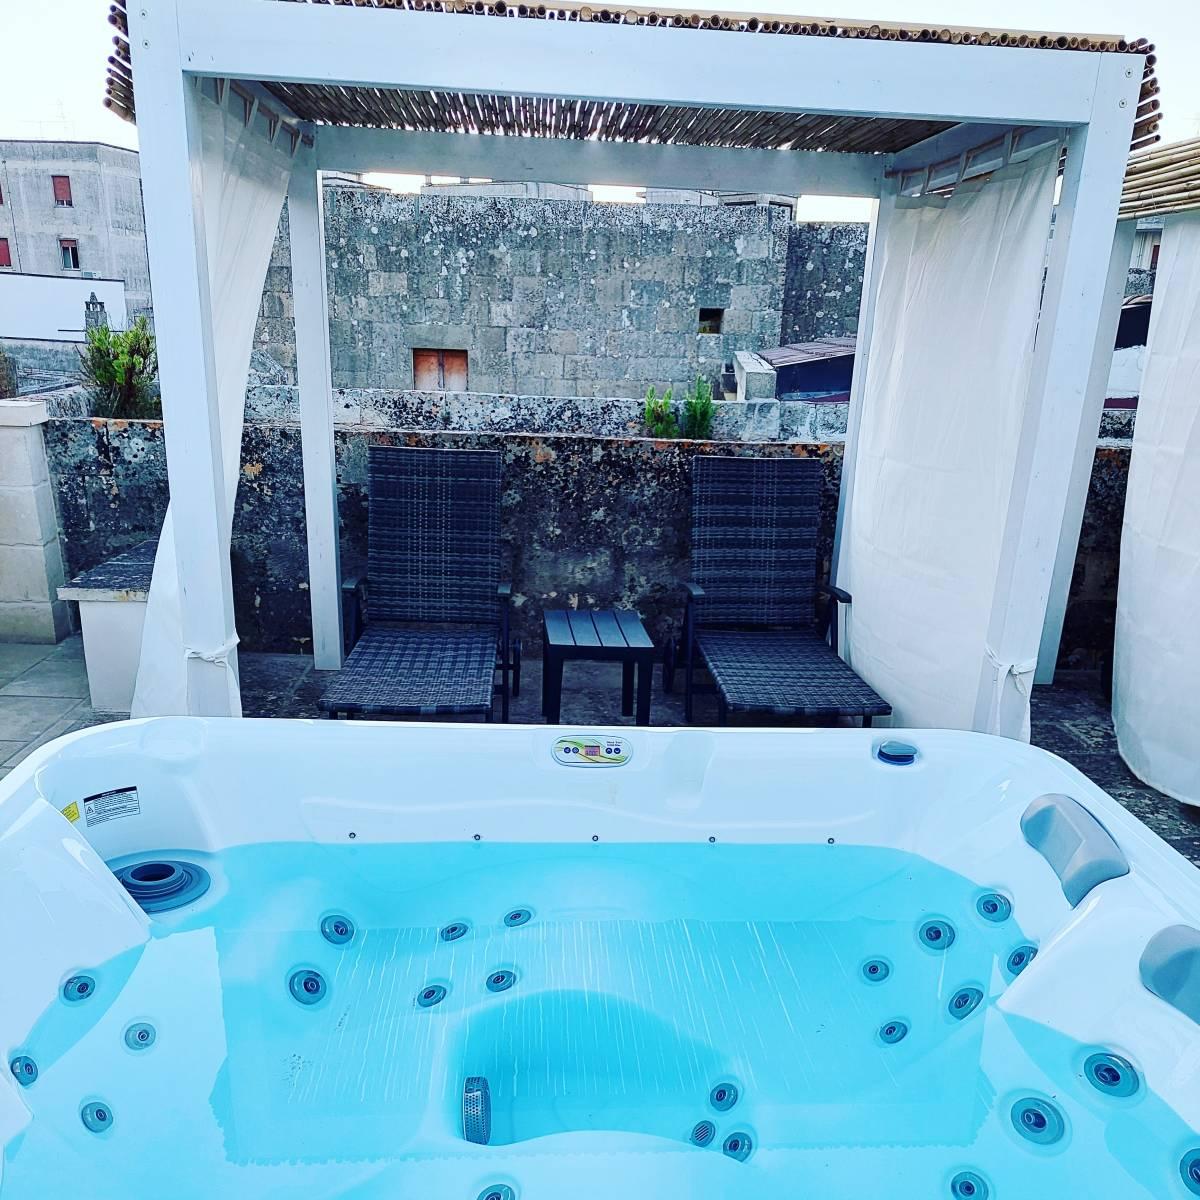 Dimora Assuntina Martano, Martano, Italy, affordable motels, motor inns, guesthouses, and lodging in Martano